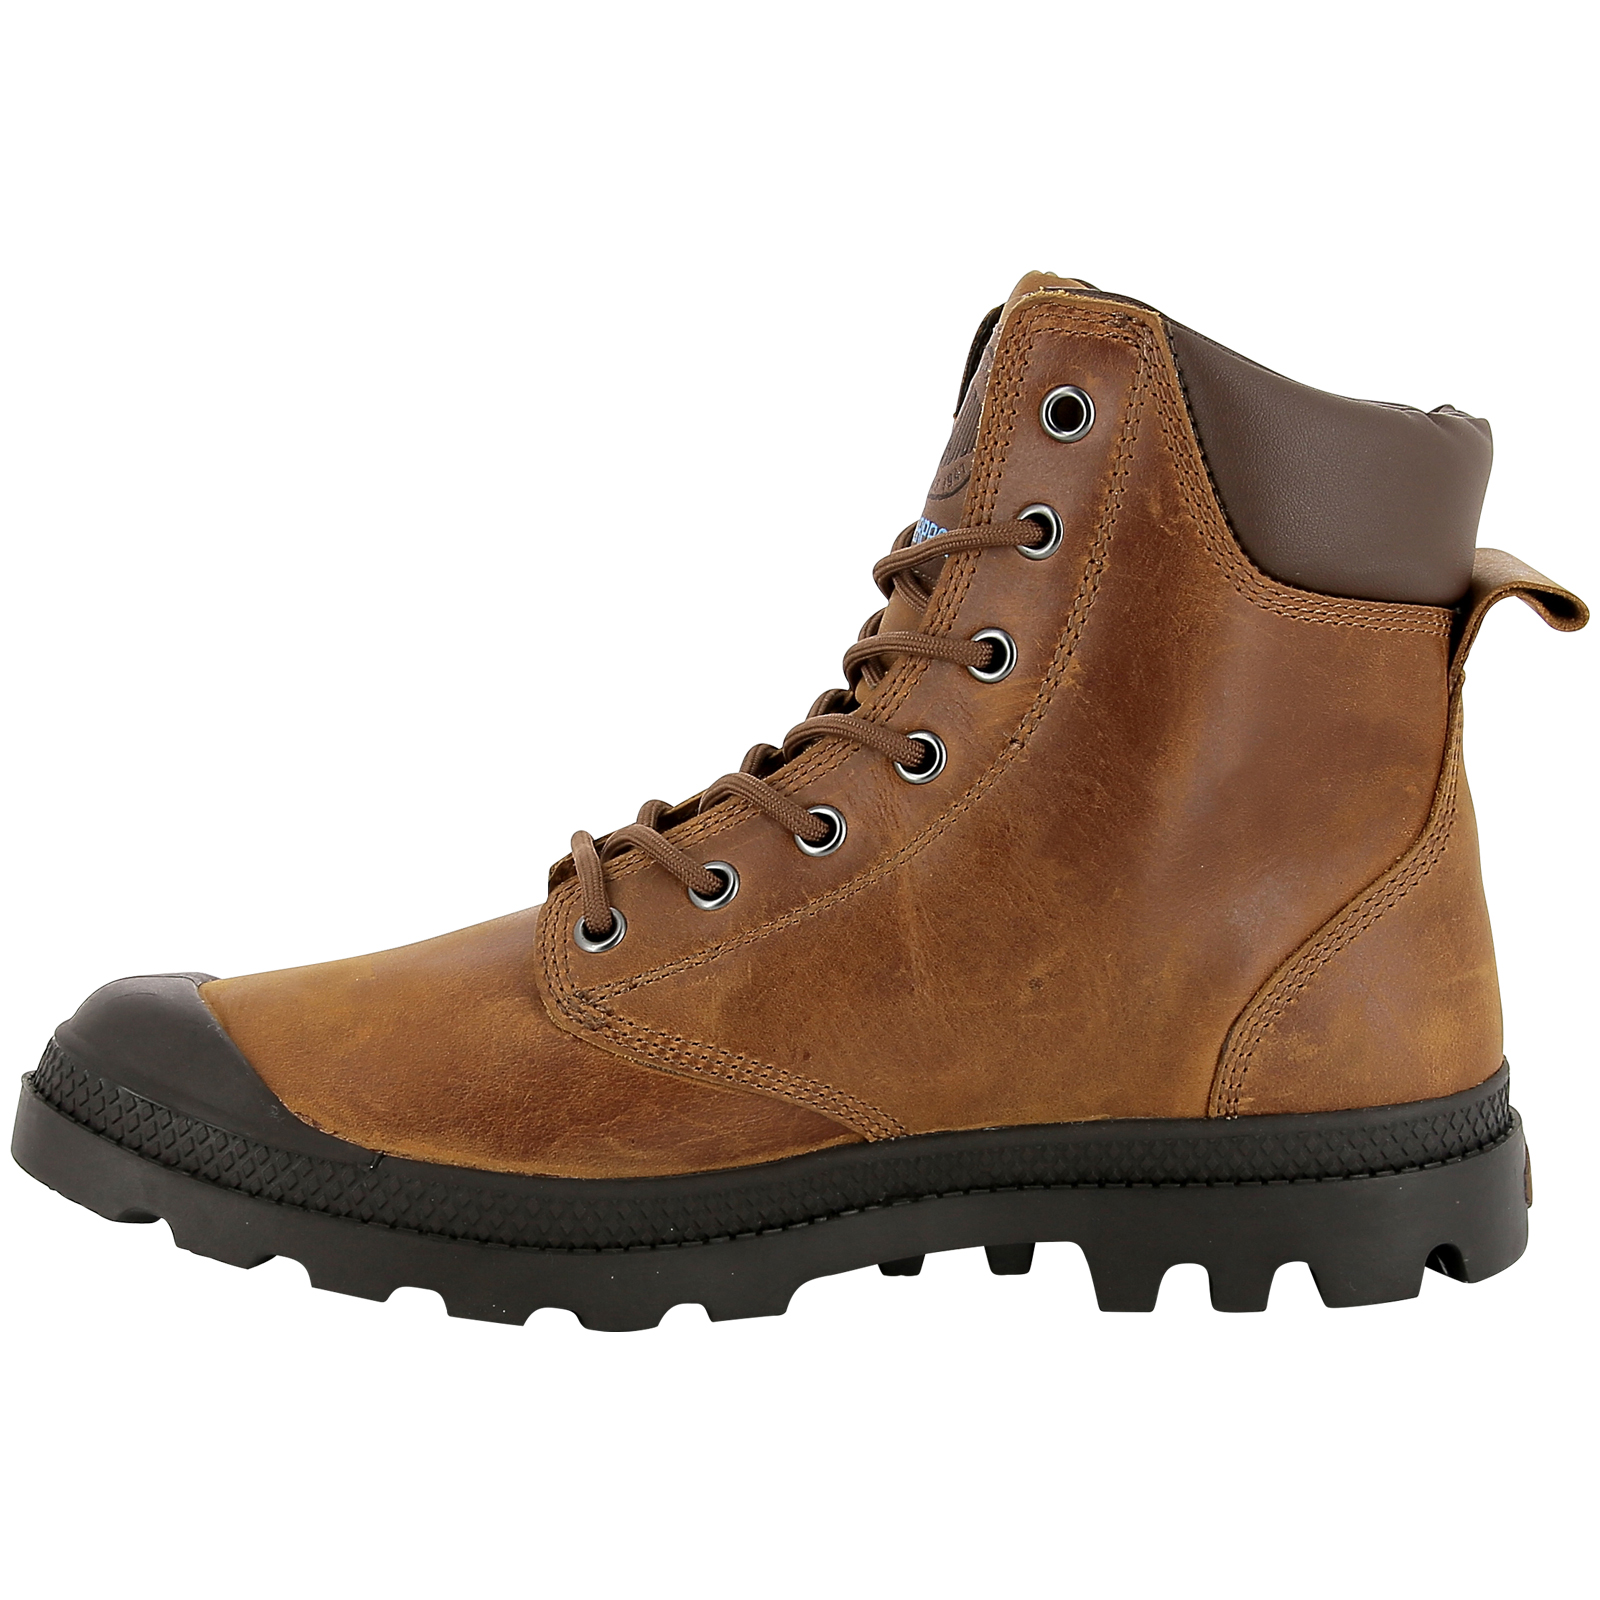 Palladium-Mens-Pampa-Cuff-Lux-Designer-Waterproof-Leather-Walking-Boots-Shoes thumbnail 24